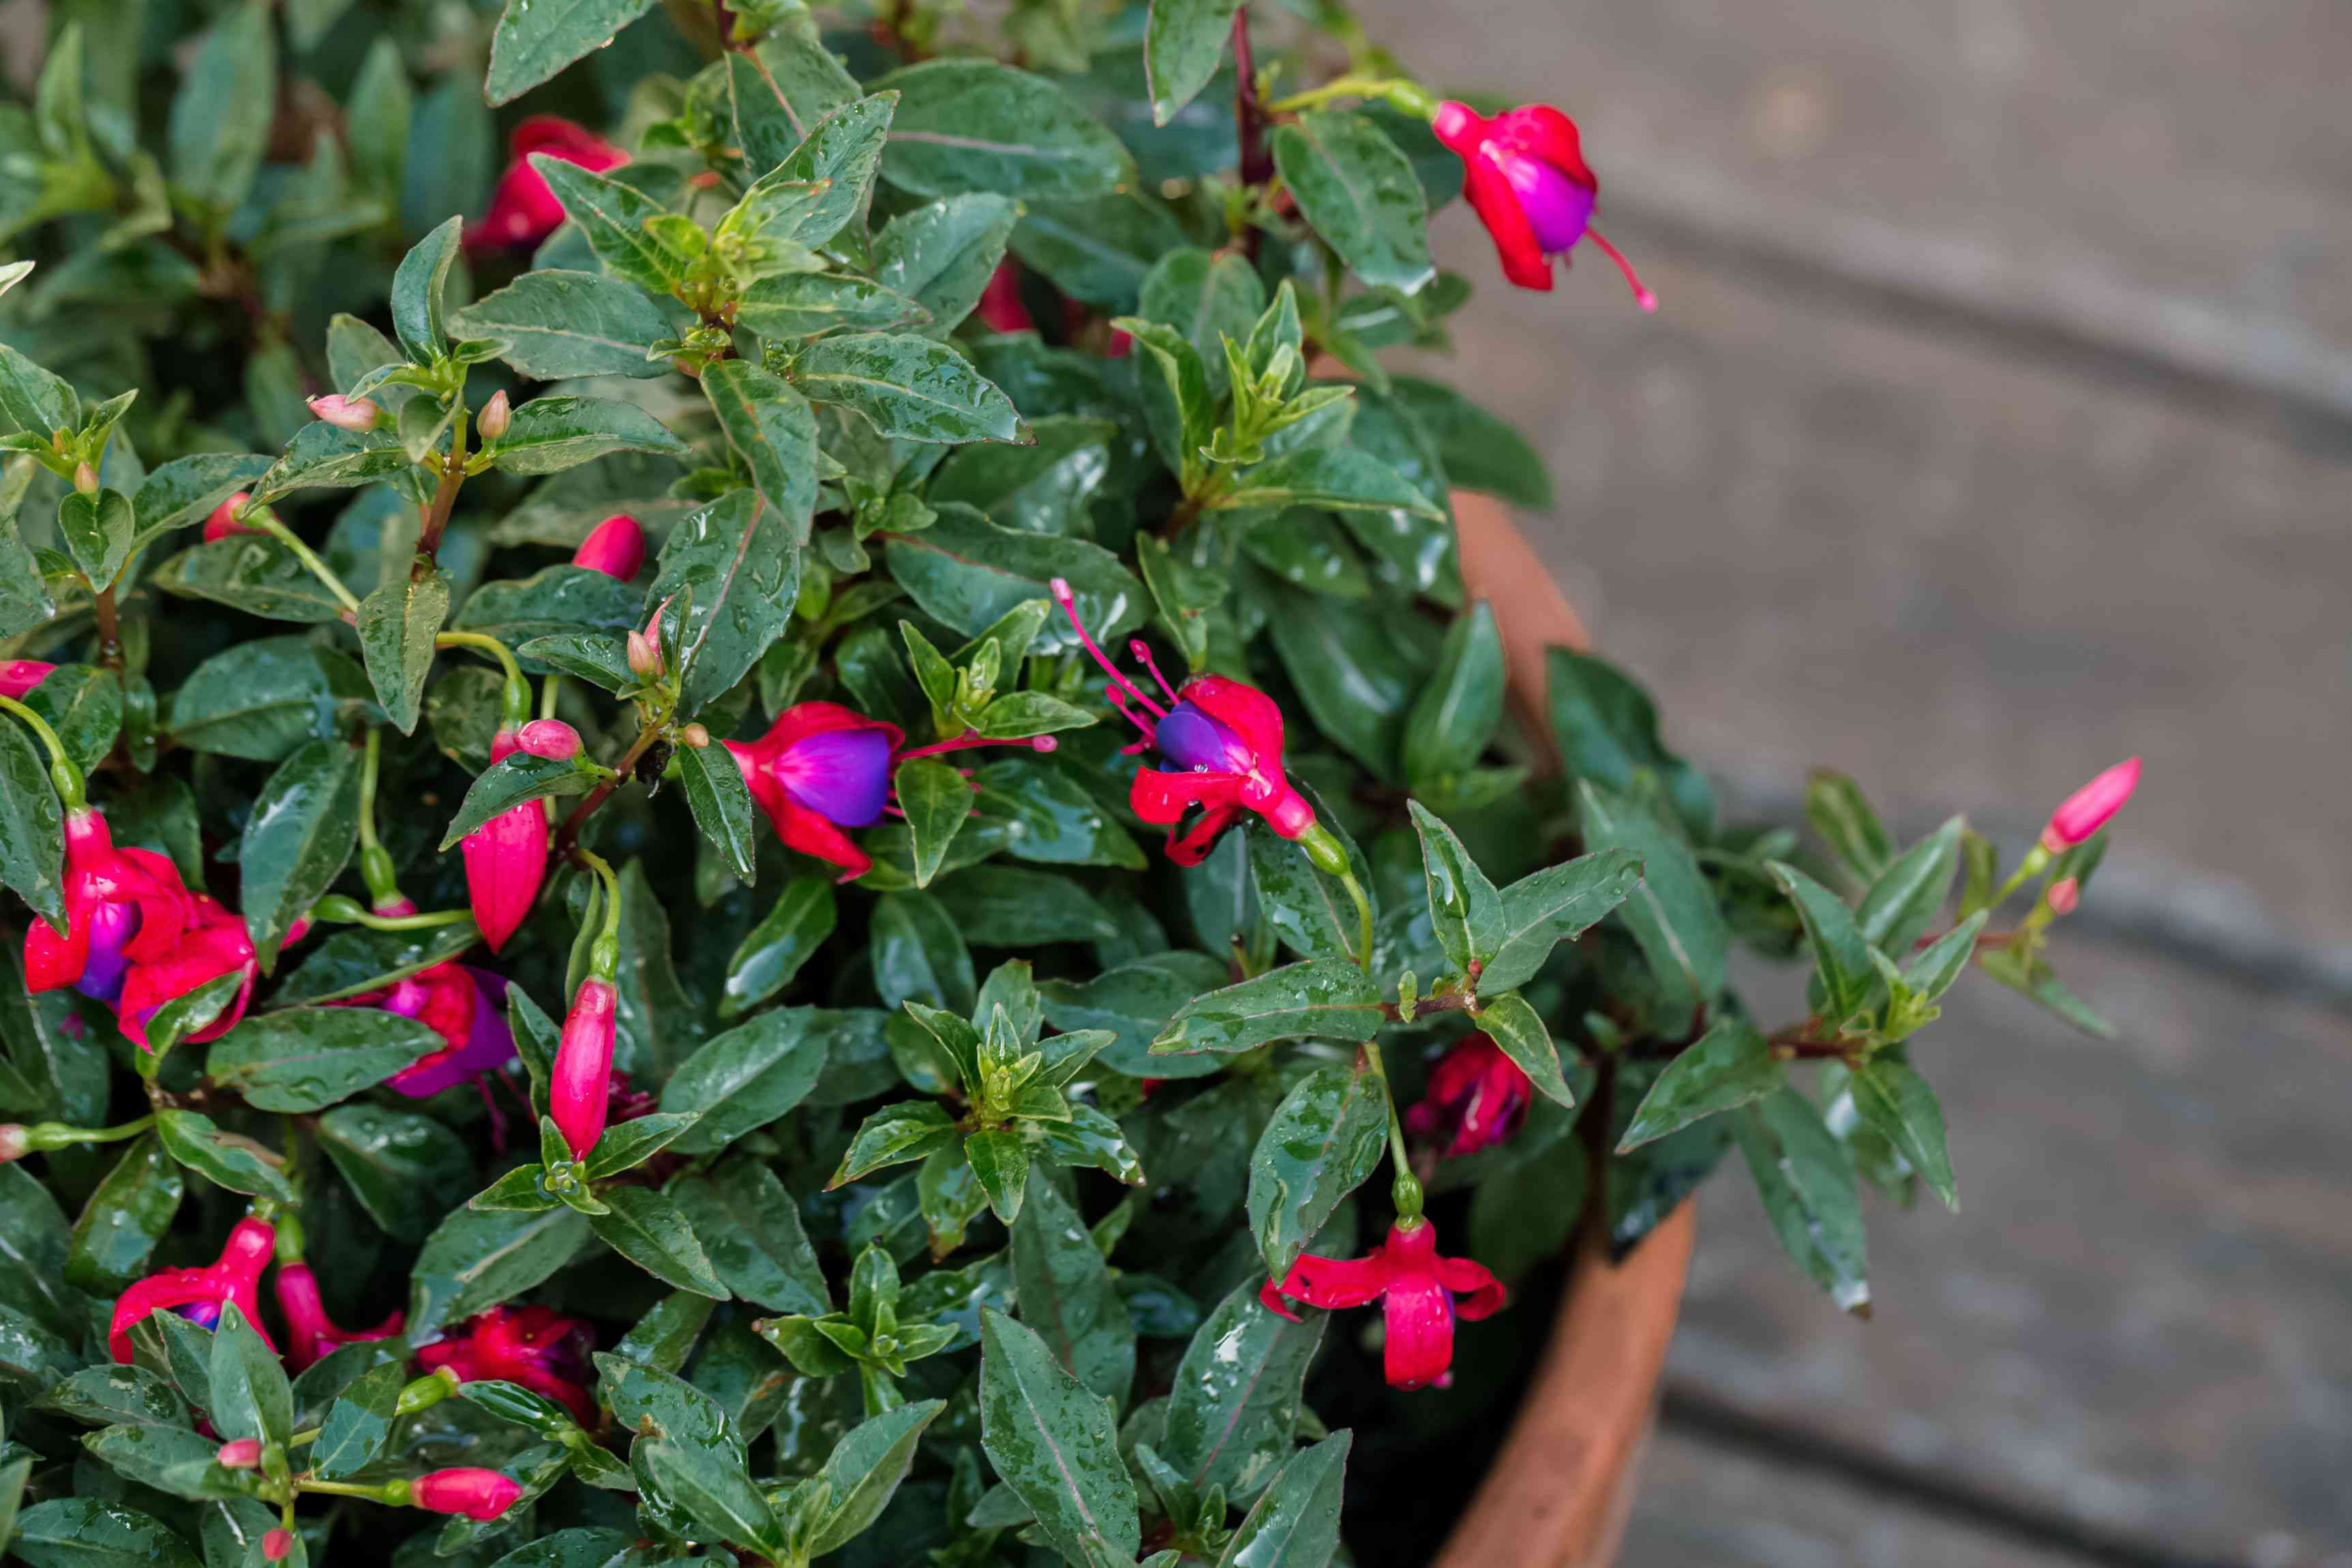 Fuchsia flowers with bright pink and purple petals surrounded by leaves closeup